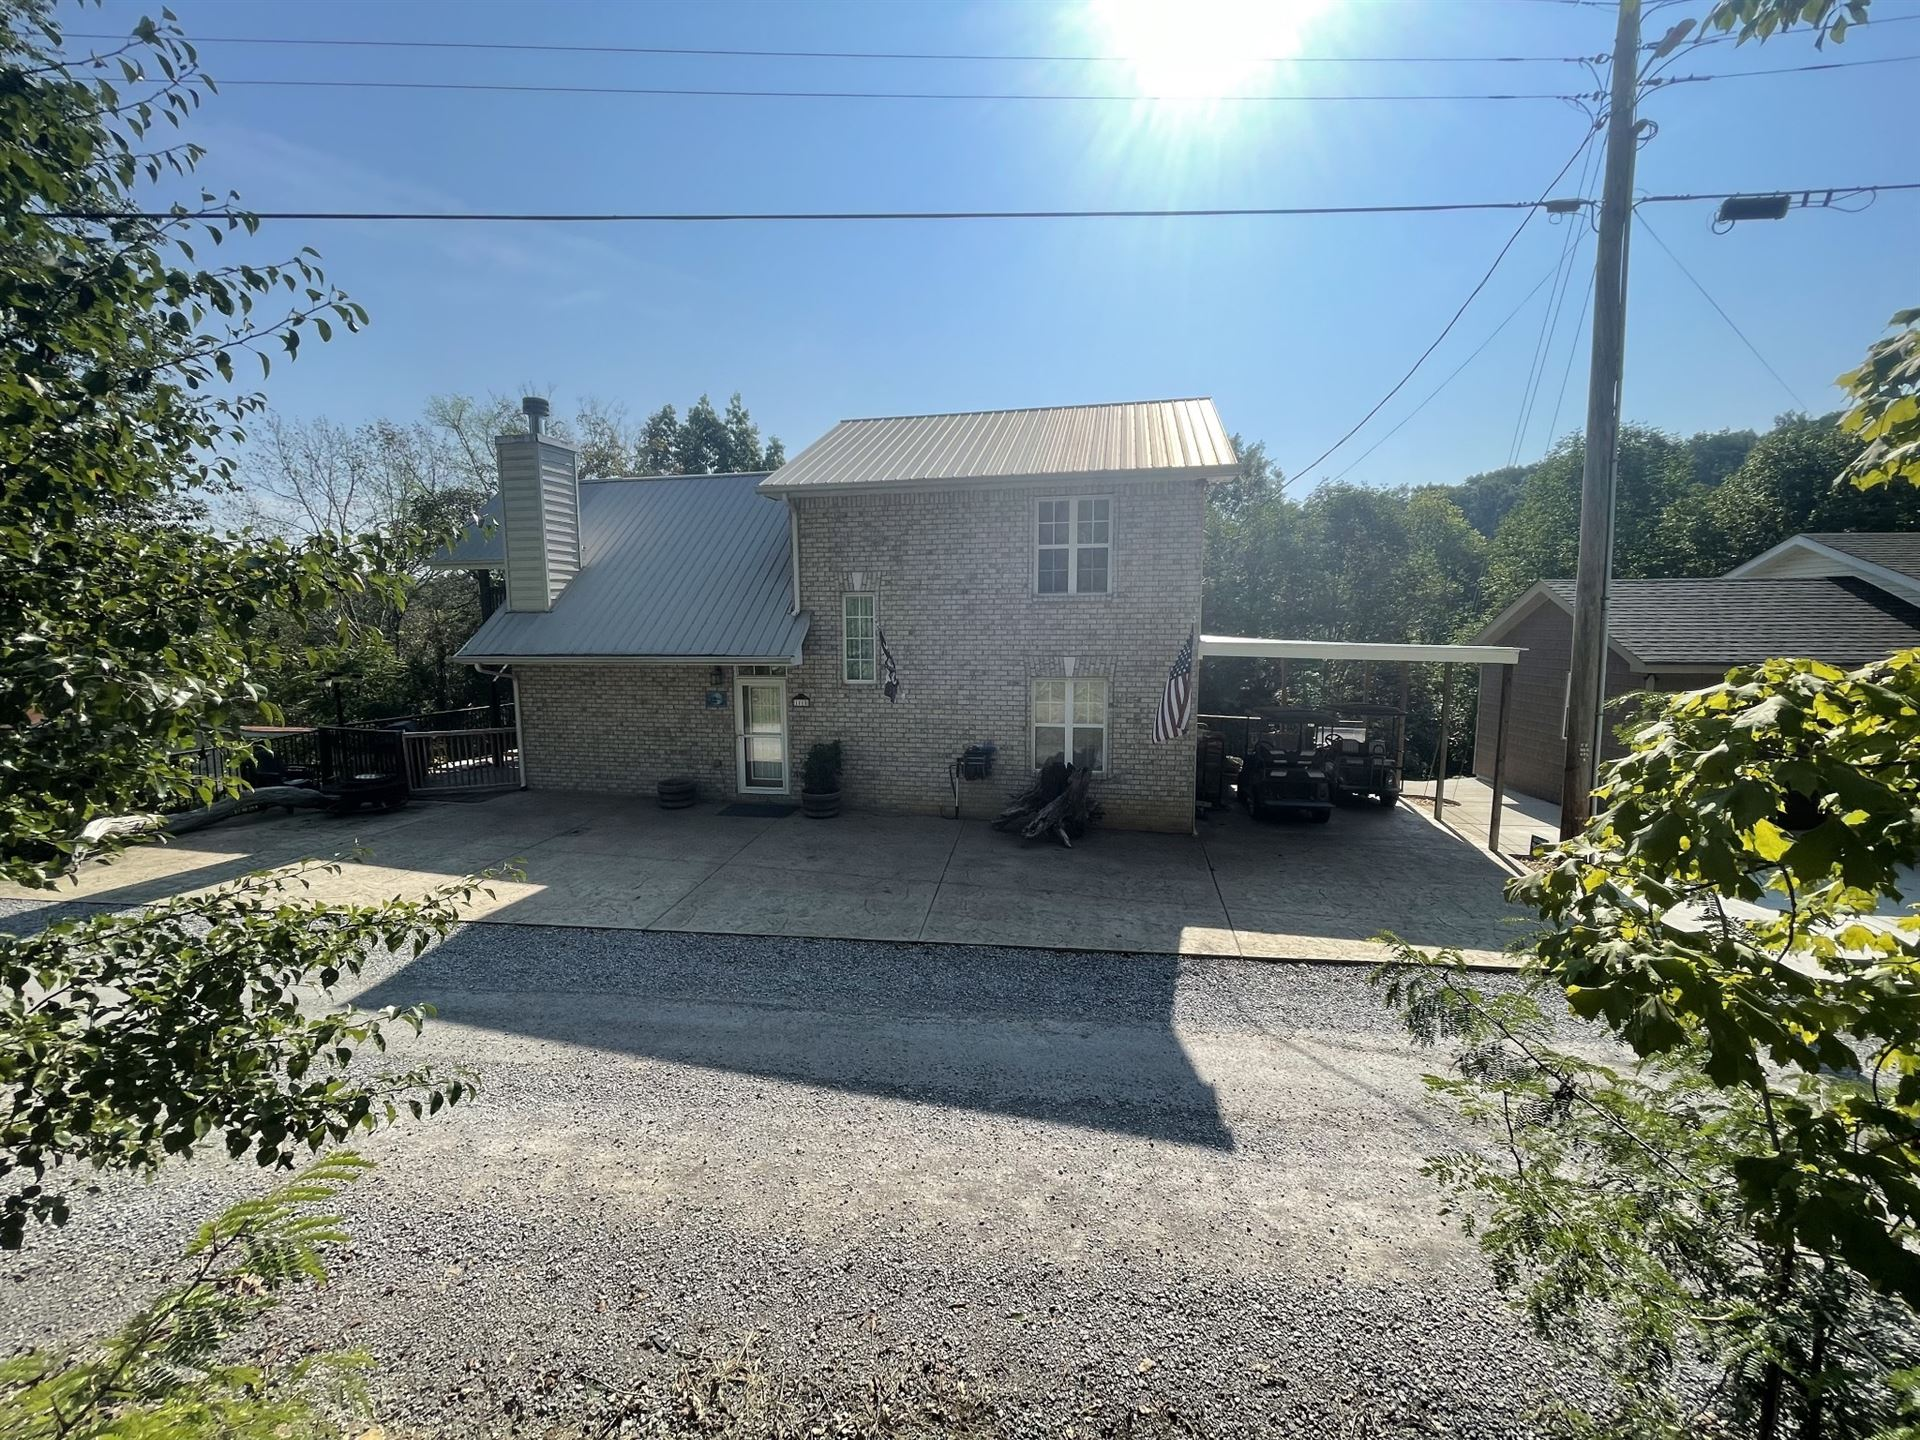 1115 Old Casey Cove Rd, Smithville, TN 37166 - MLS#: 2286251